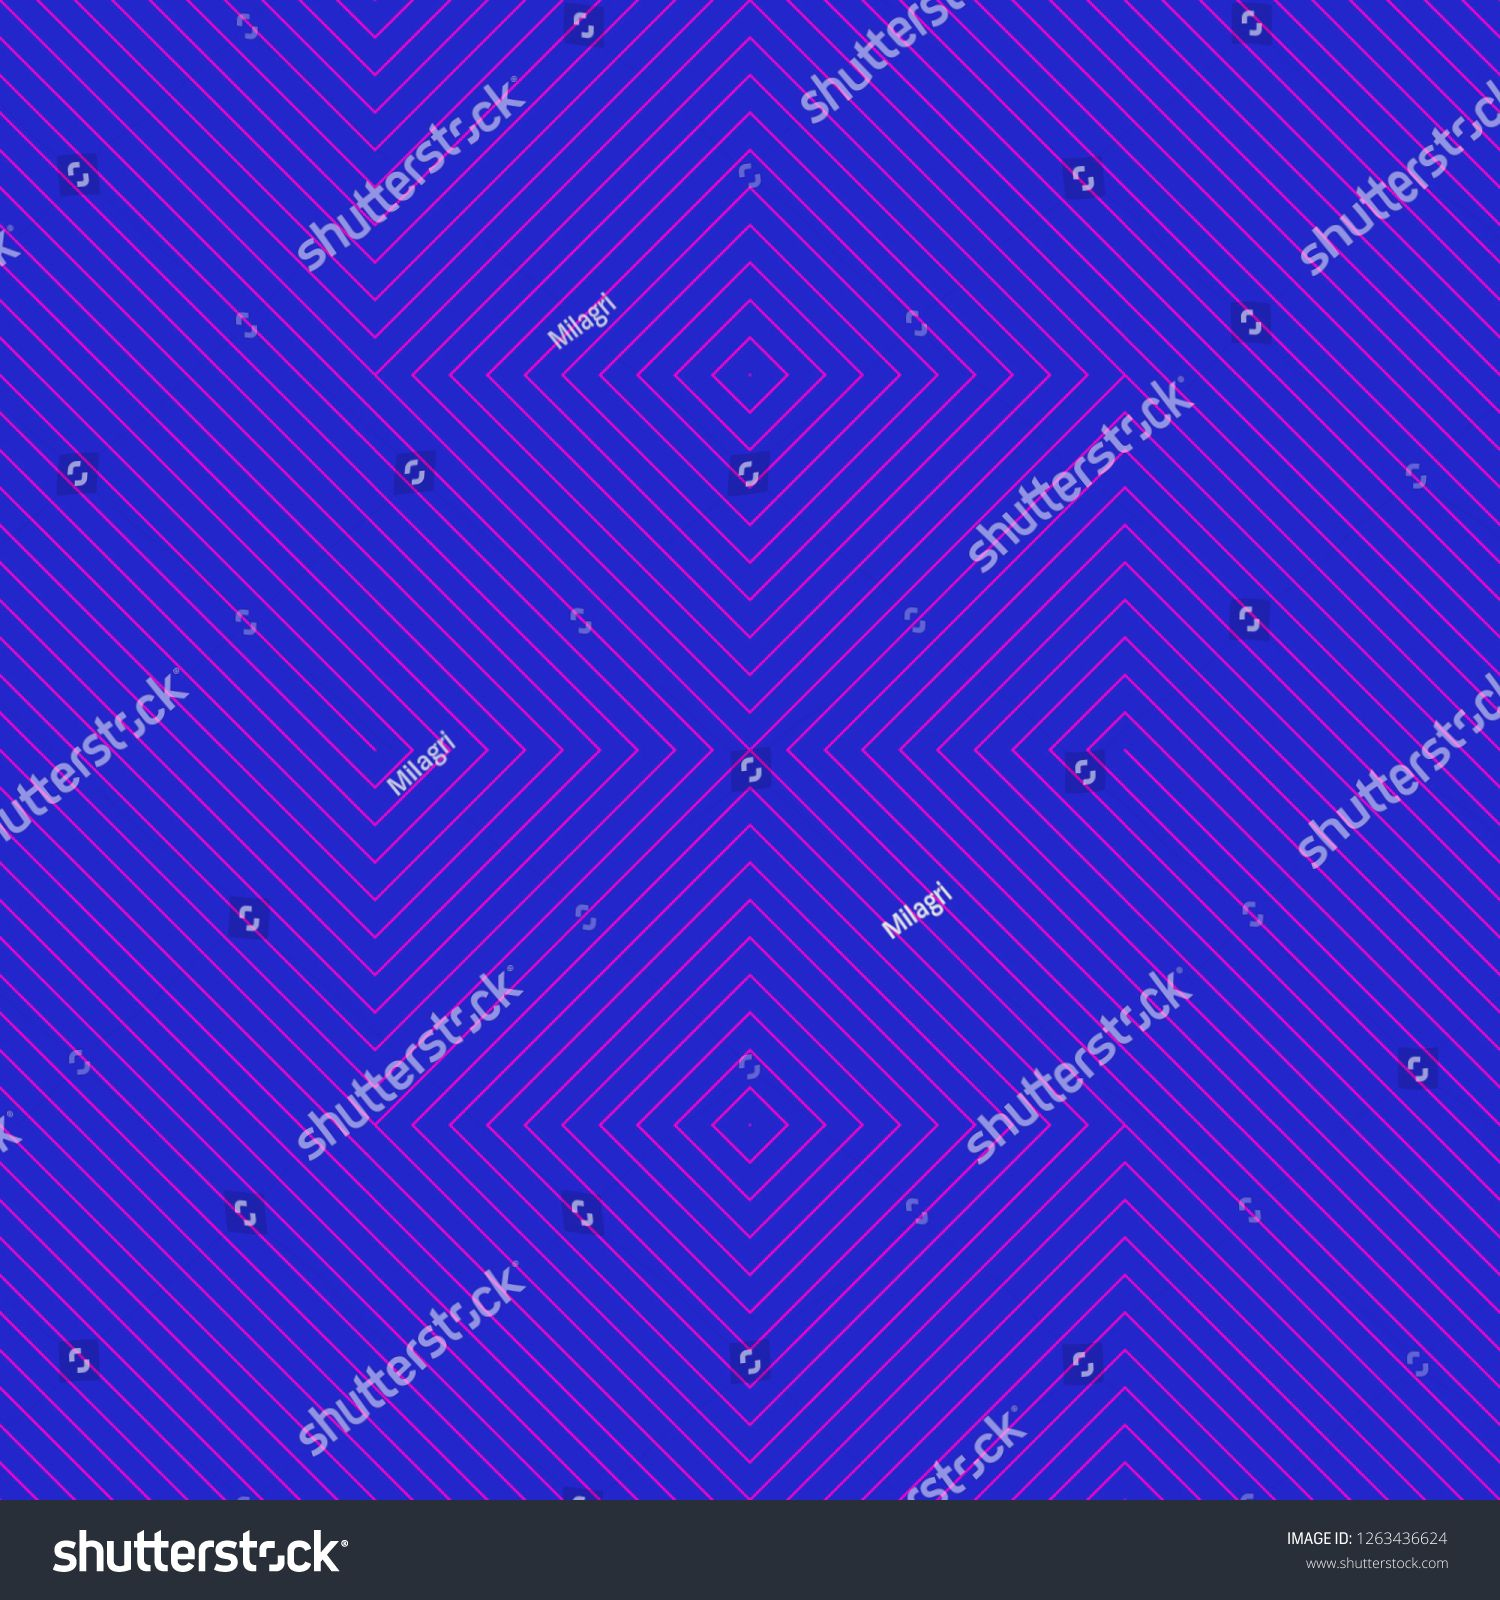 Linear color seamless pattern Simple geometric background 1500x1600